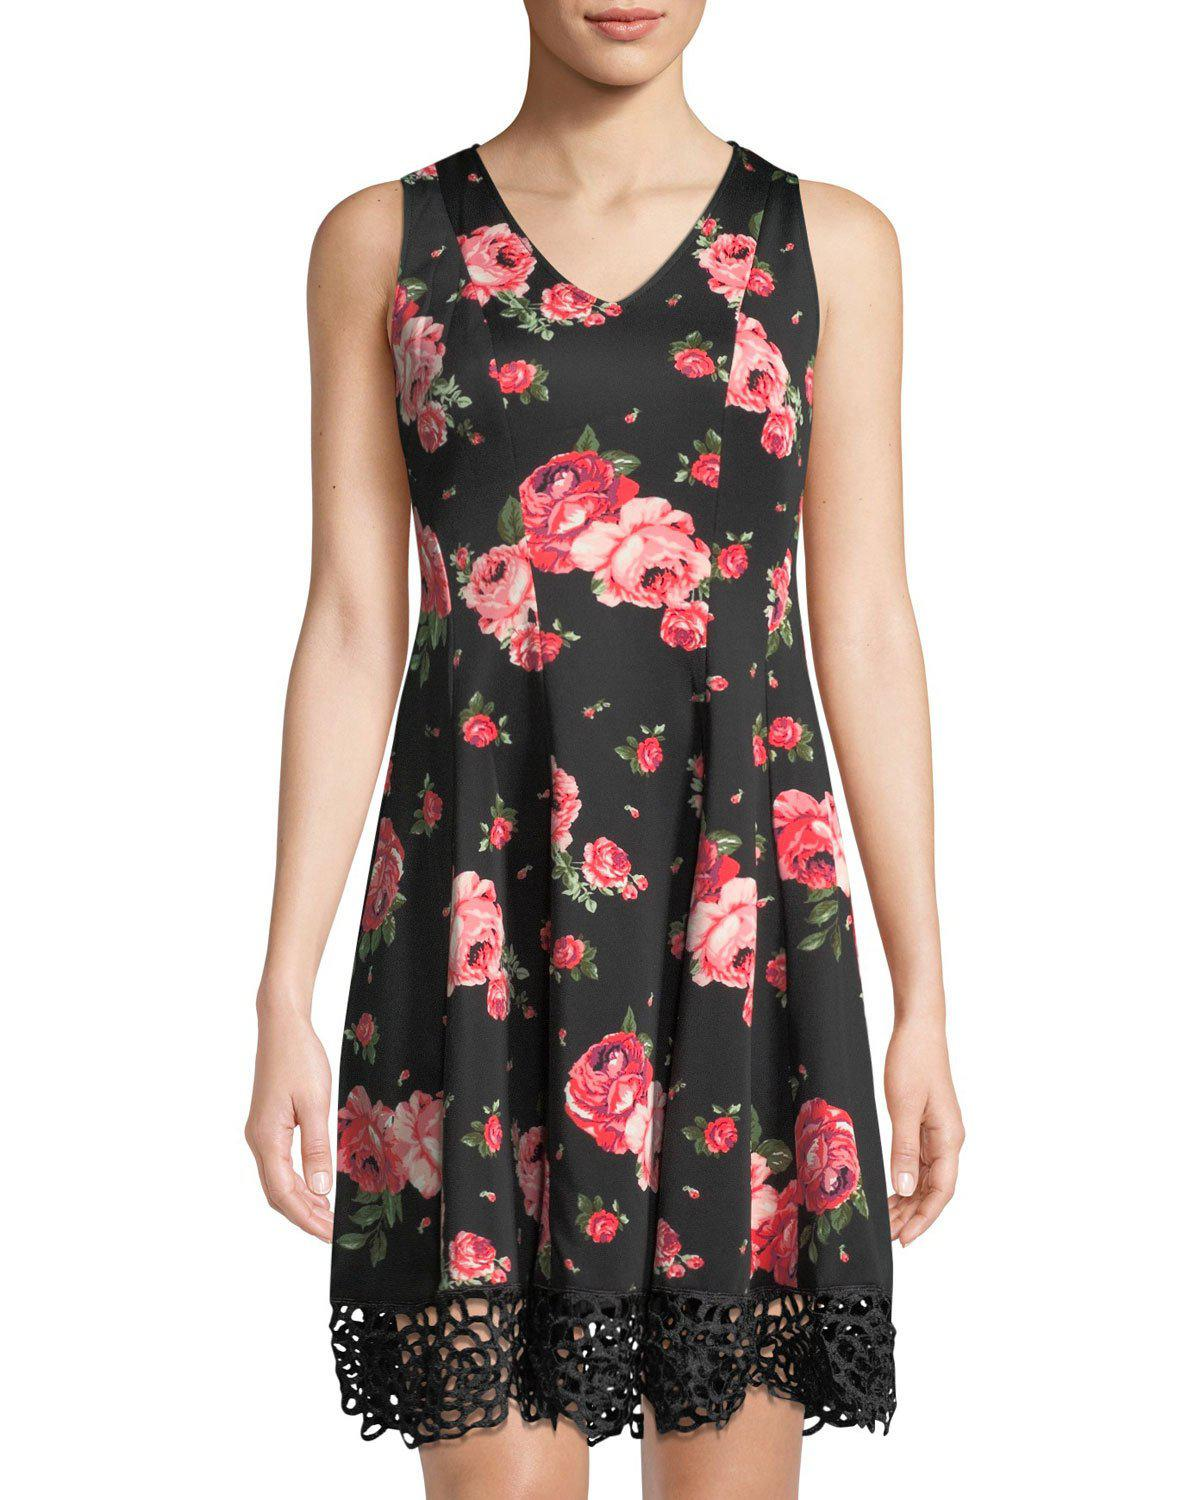 49e710772d936c Donna Ricco Floral-Print Crochet-Hem Fit-&-Flare Dress In Black ...